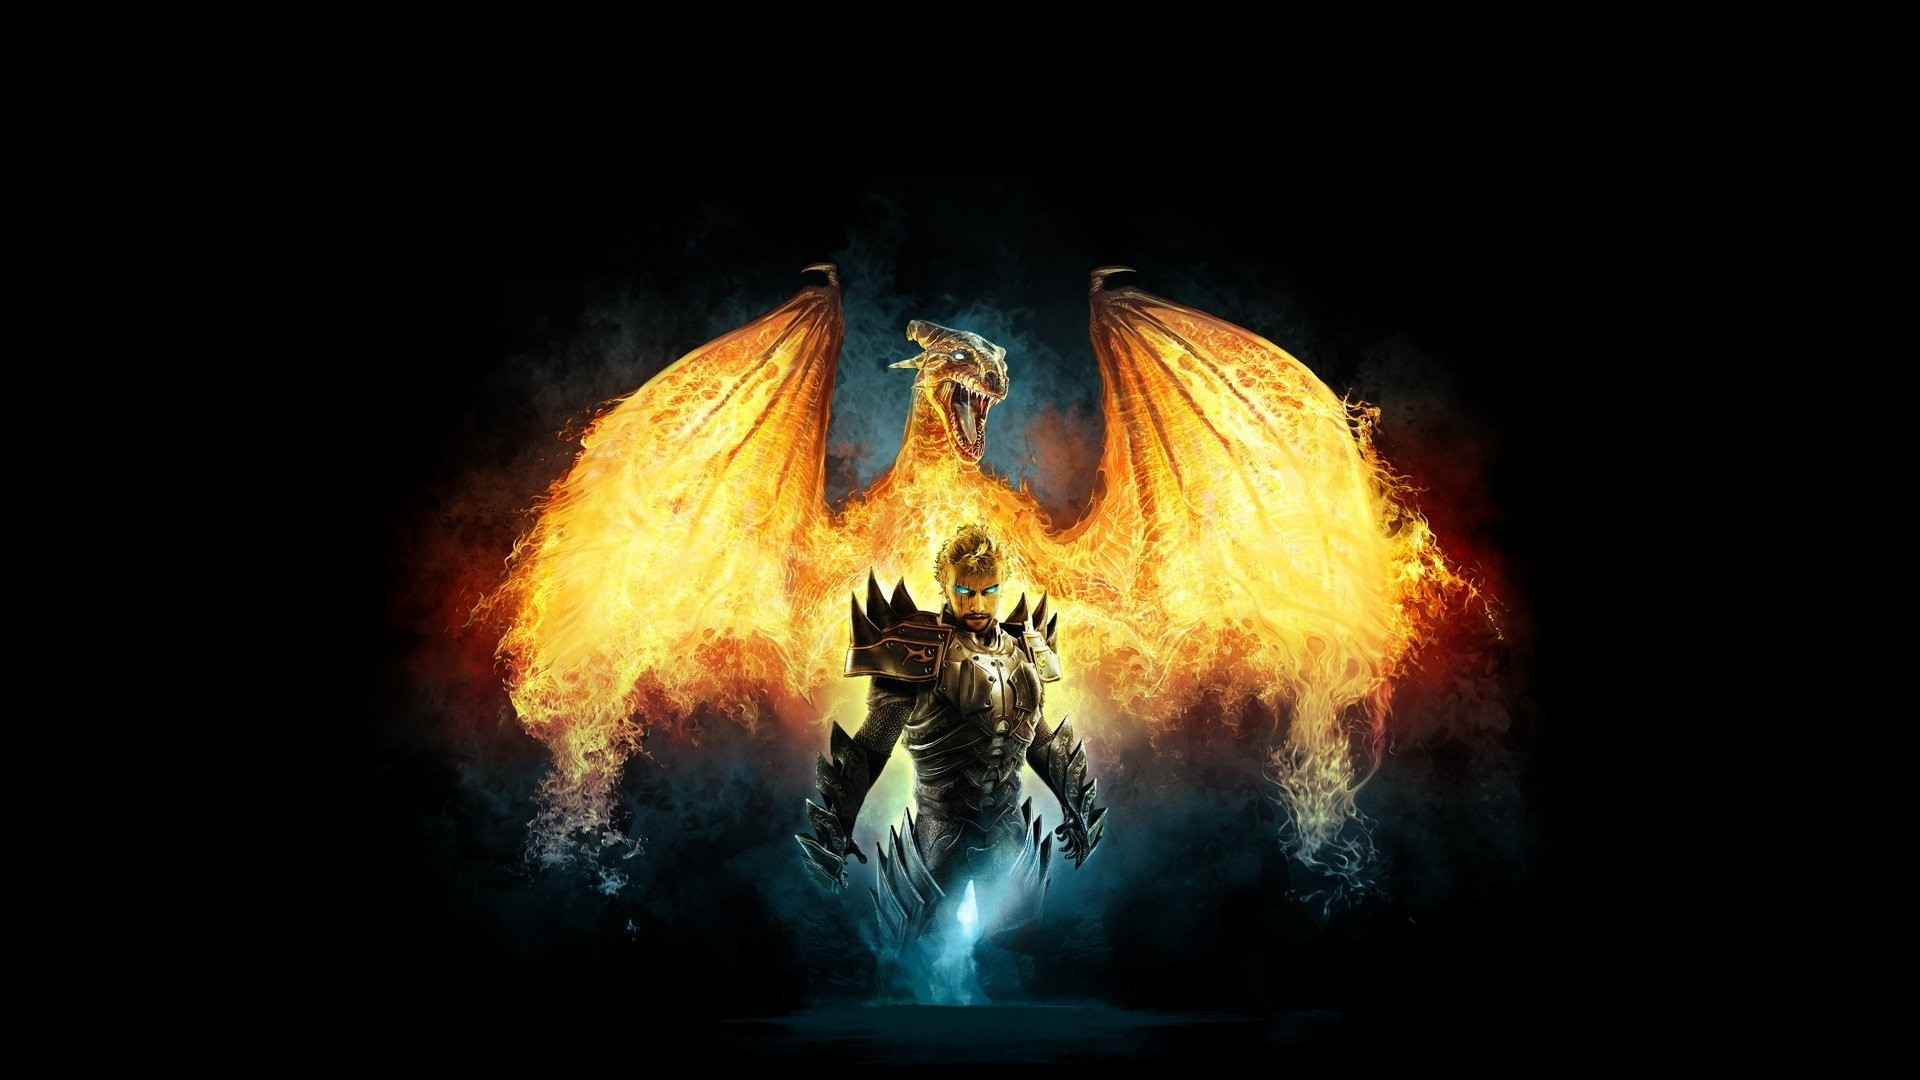 Sick Iphone 4 Wallpapers Awesome Fire Wallpaper 49 Images